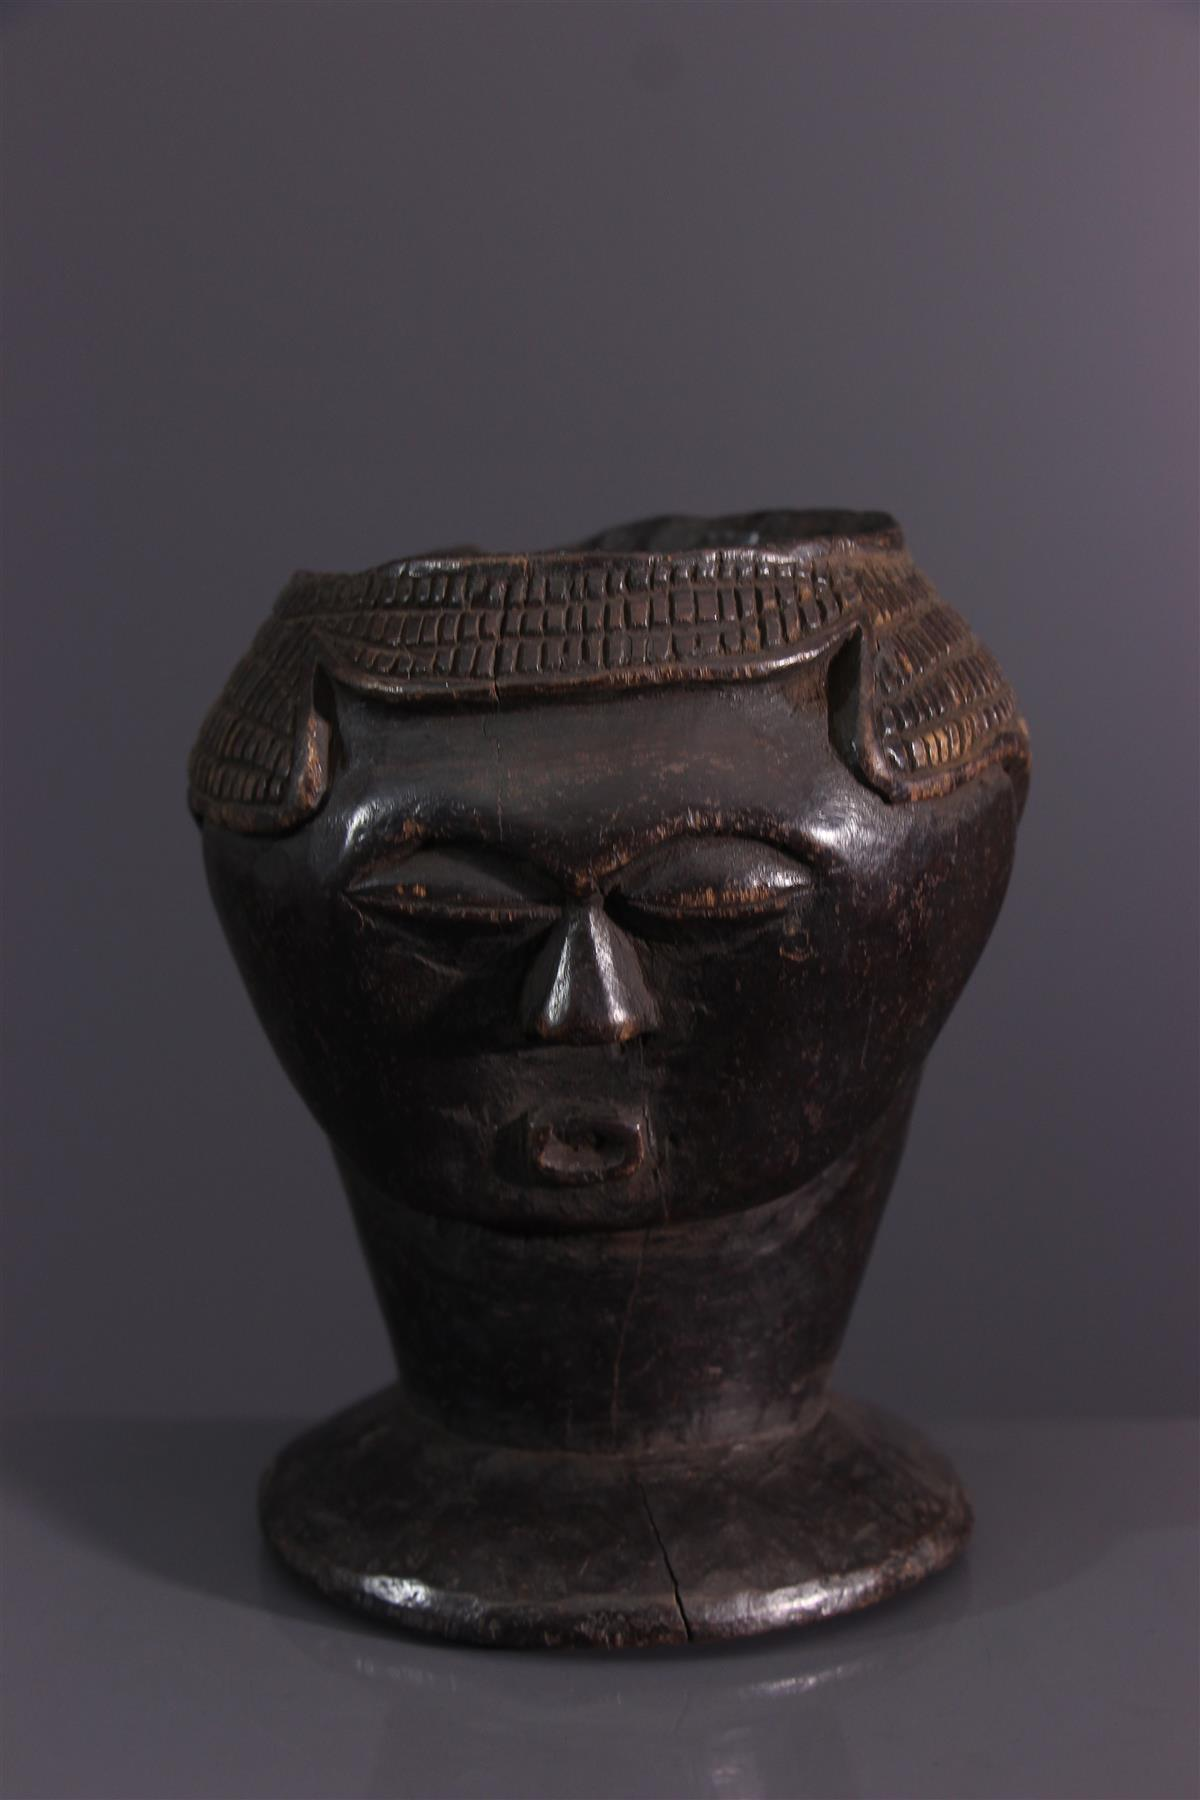 Lele Cup - Tribal art